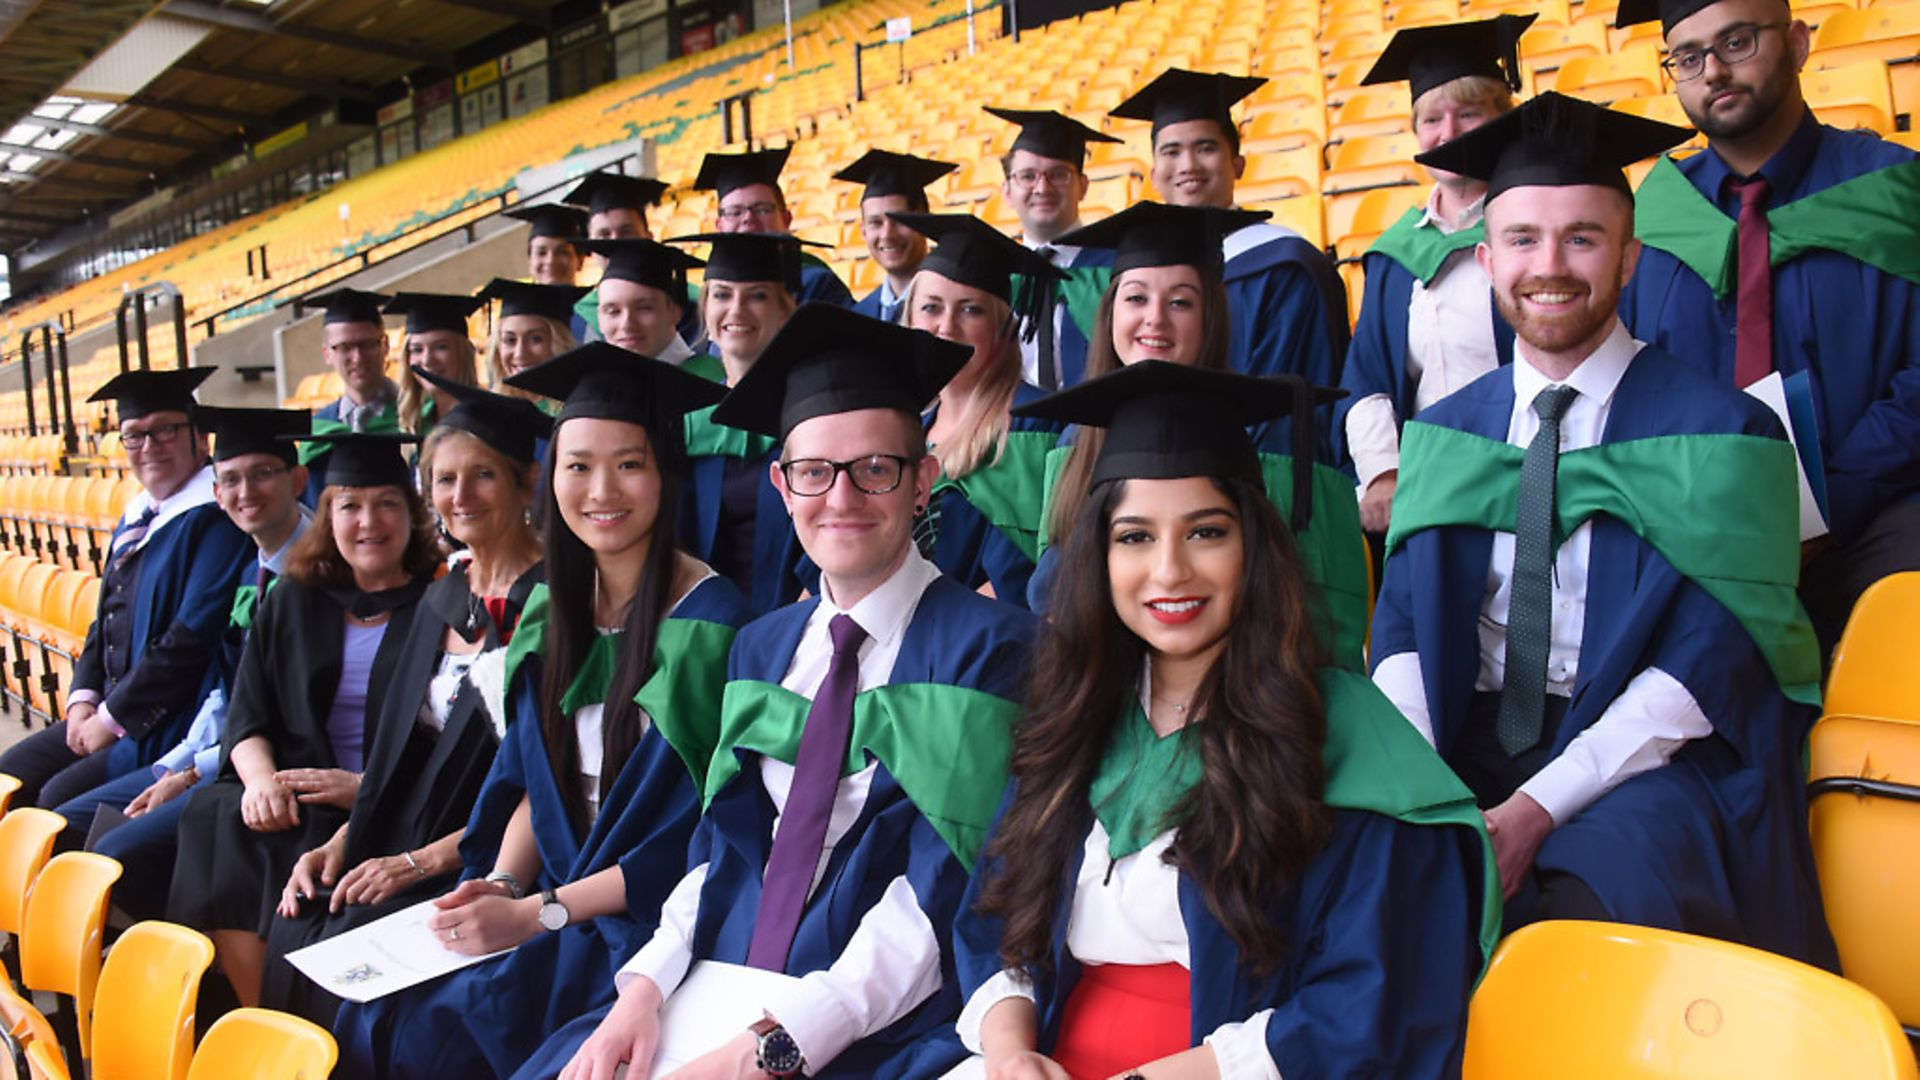 Some of the 2018 cohort of students graduating from university. Photograph: Denise Bradley. - Credit: Copyright: Archant 2018